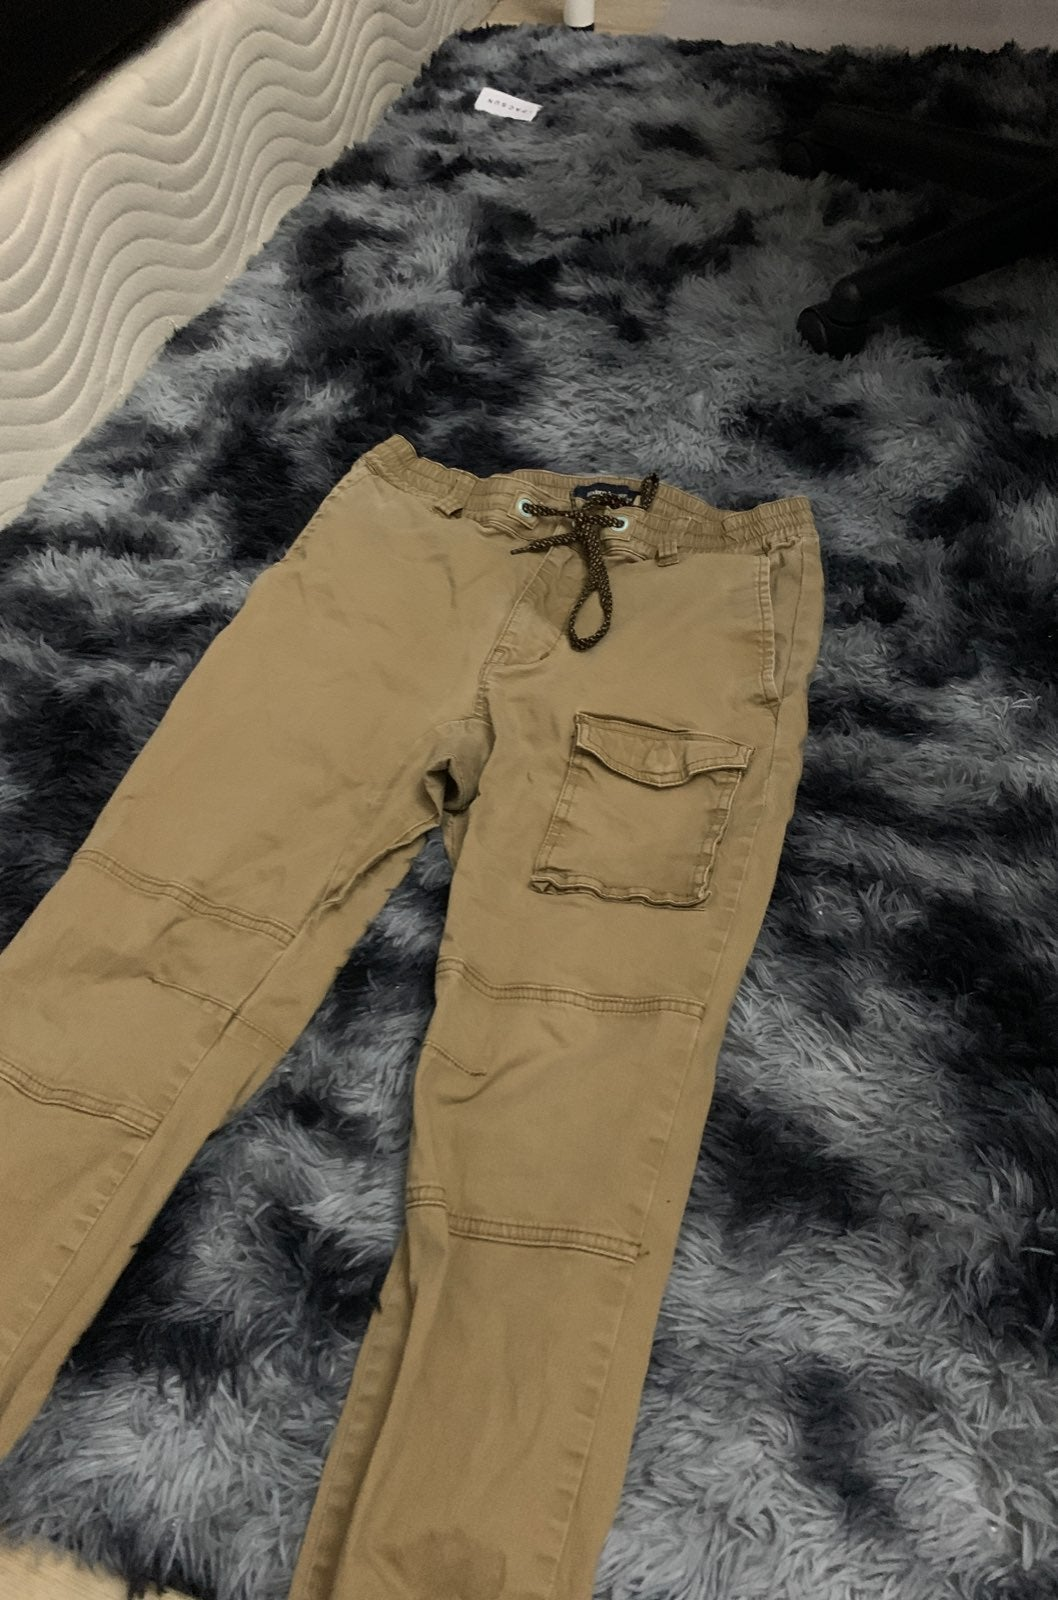 Pacsun Cargo Pants Small for men